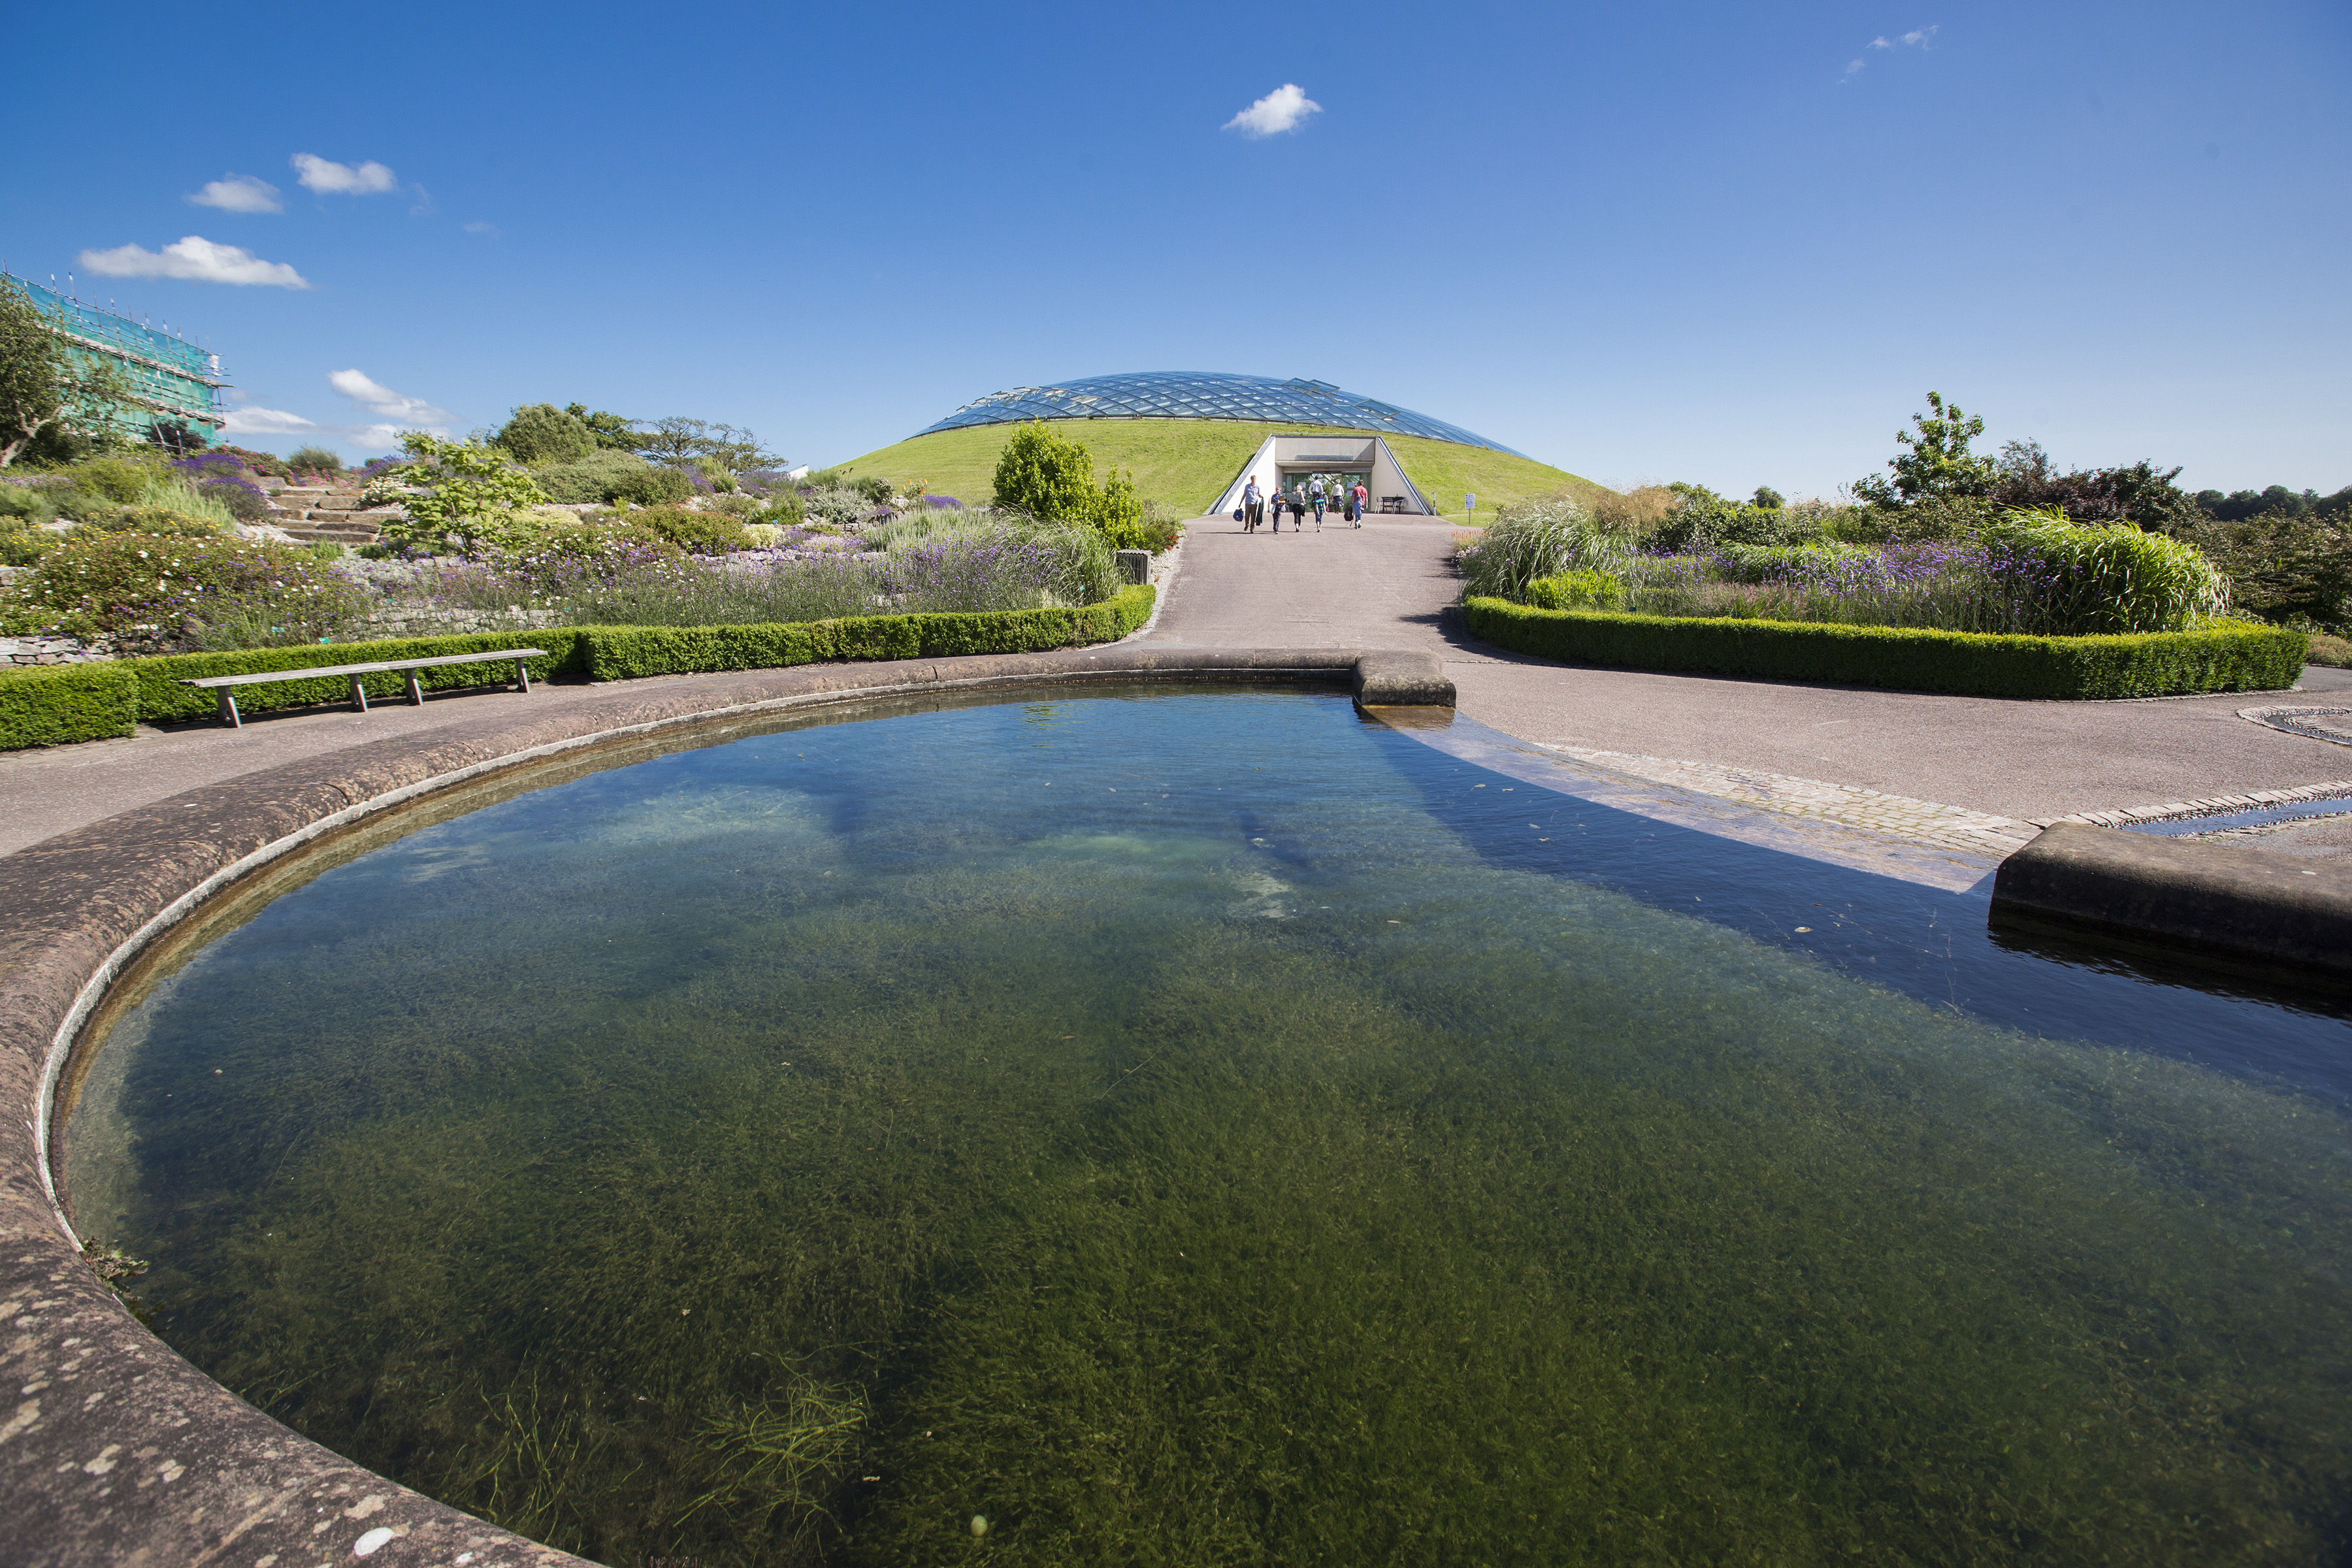 The Mirror Pool Looking Towards The Great Glasshouse Ggh Water Feature National Botanic Garden